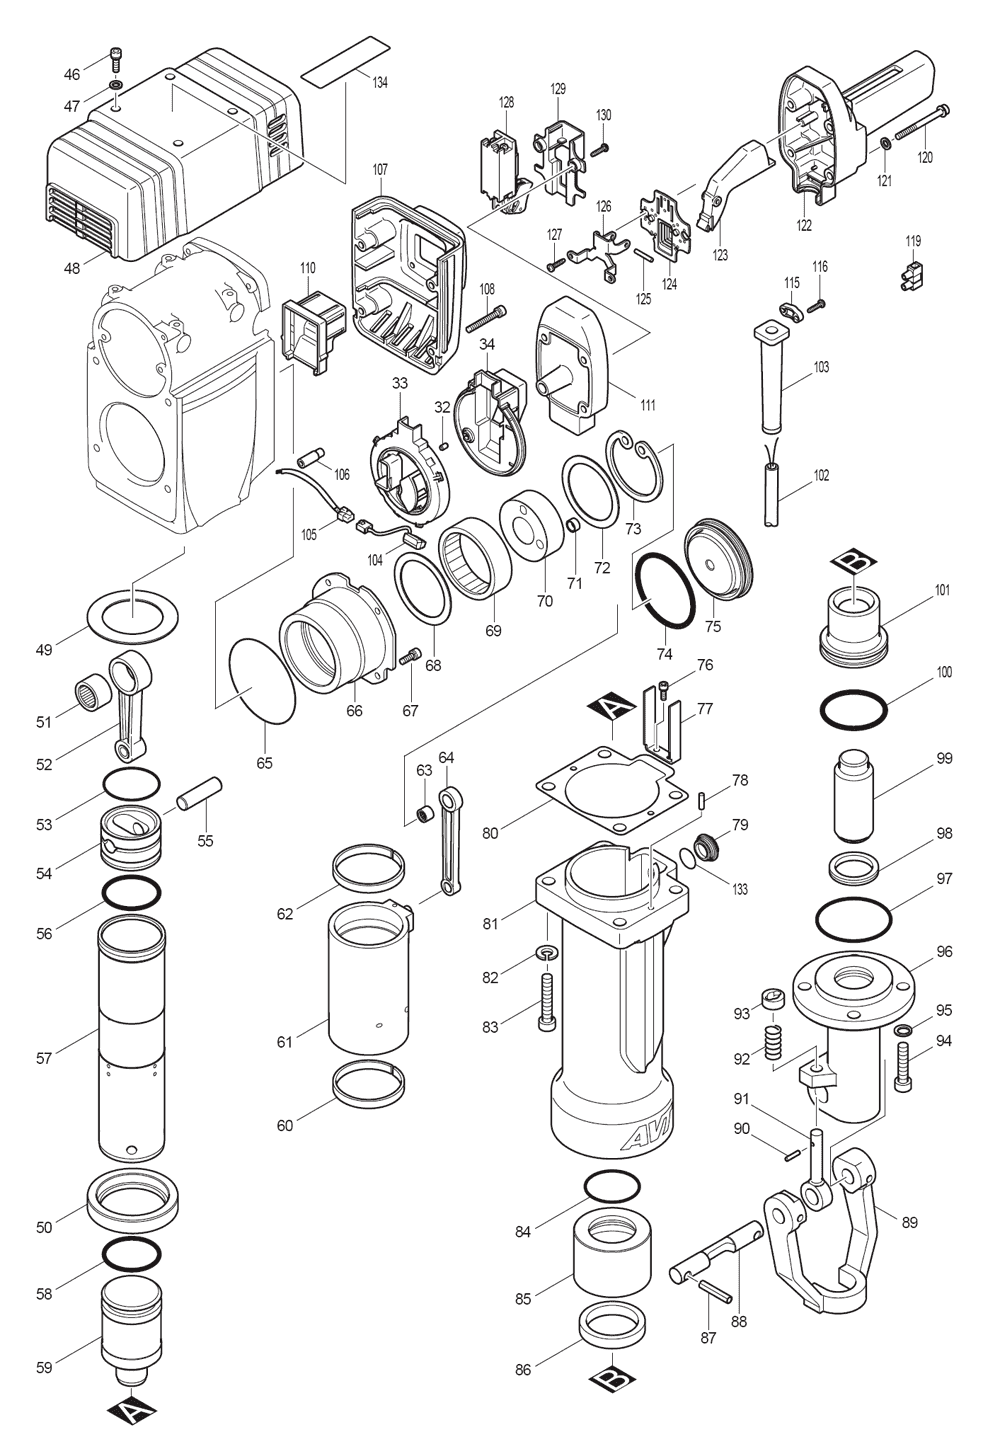 HM1810-T2-Makita-PB-1Break Down